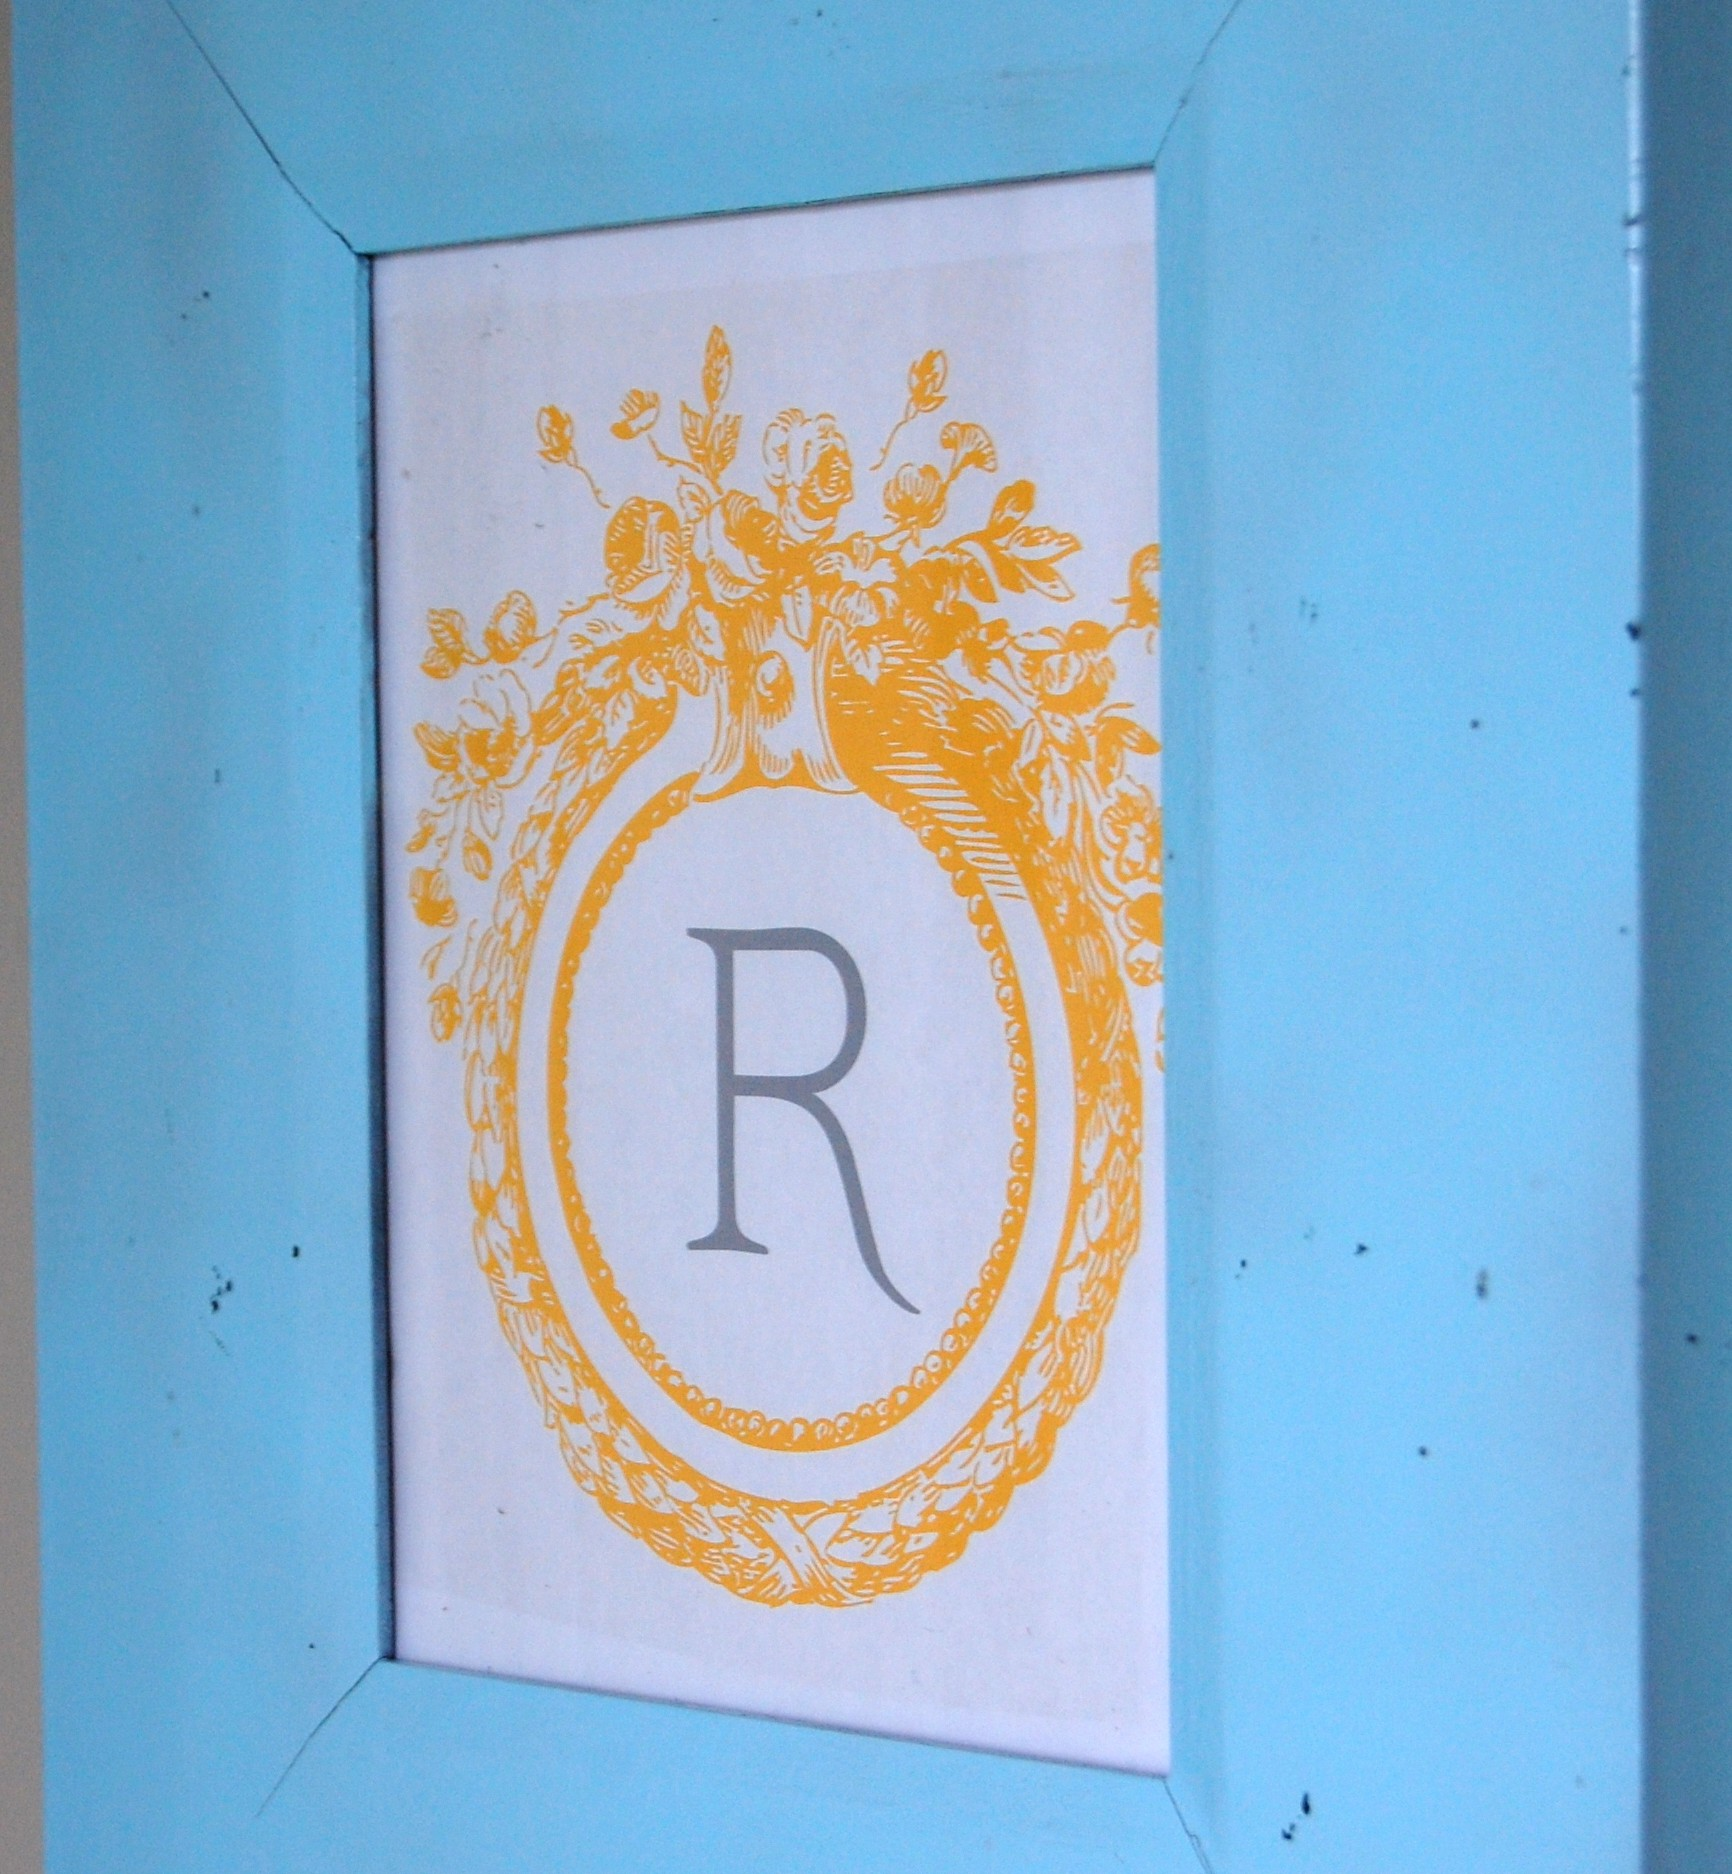 DIY Wall Art Idea #1: Free, Frameable Monogram!